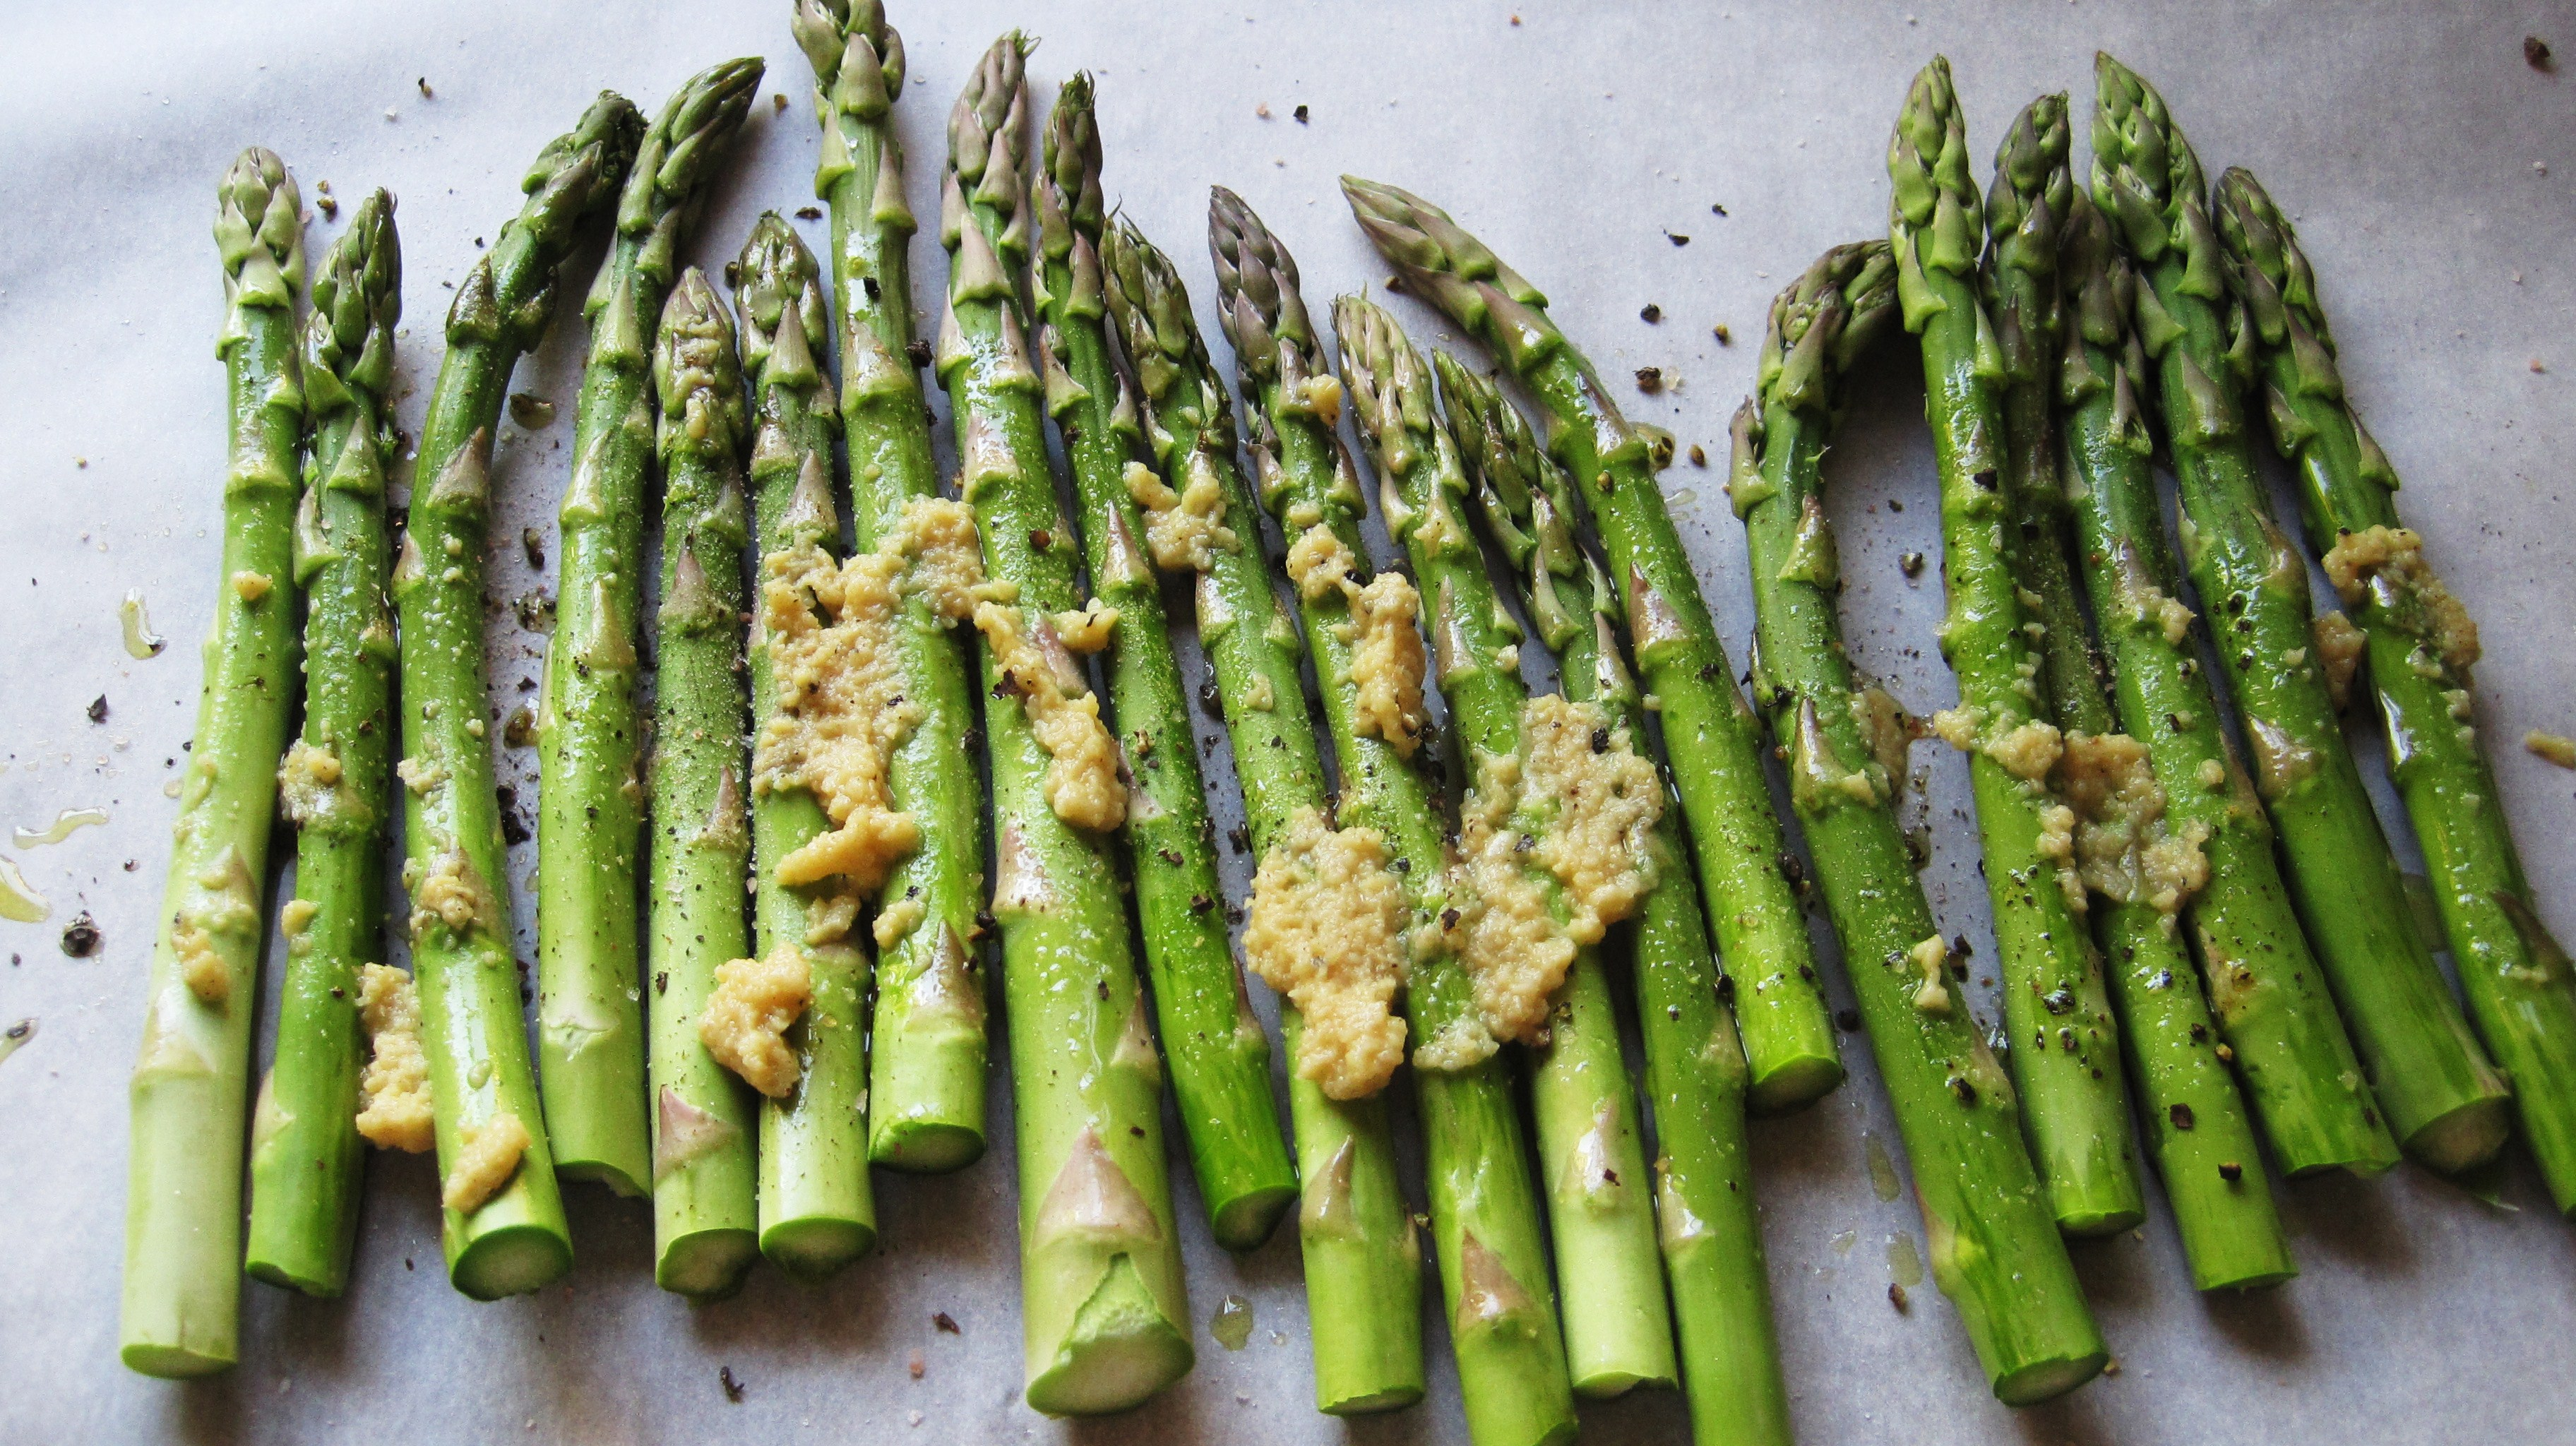 roasted asparagus 6 99 per pound seasoned and roasted fresh asparagus ...